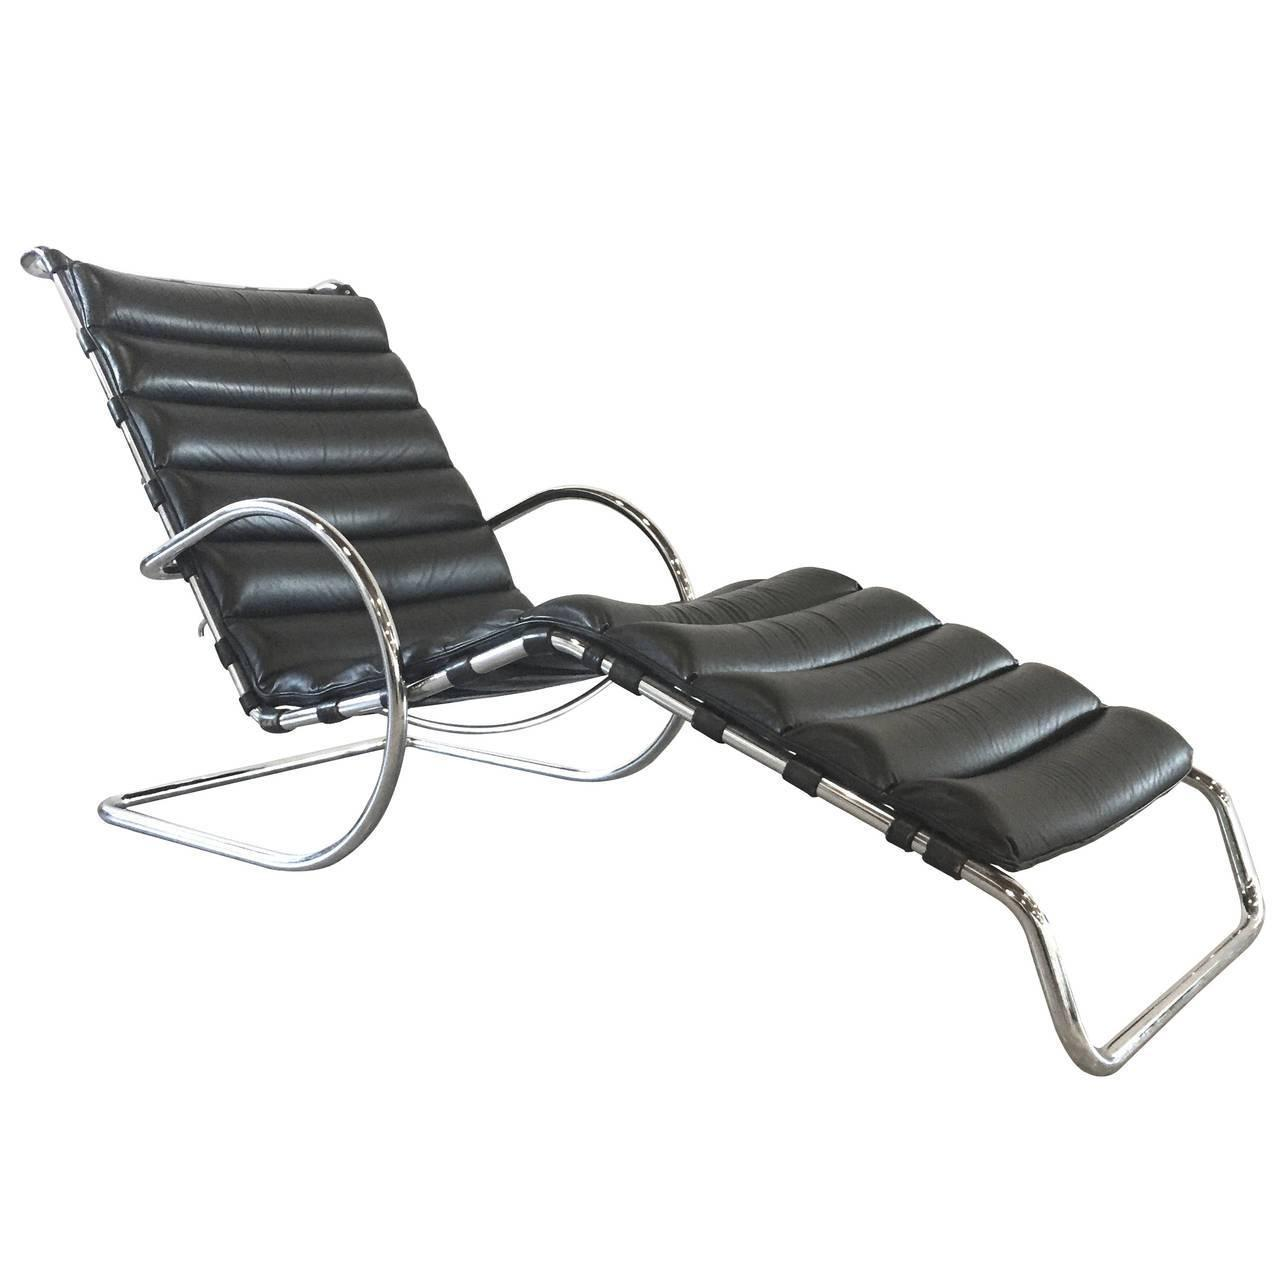 MR Chaise Lounge Chair by Ludwig Mies van der Rohe, Rare Early ...